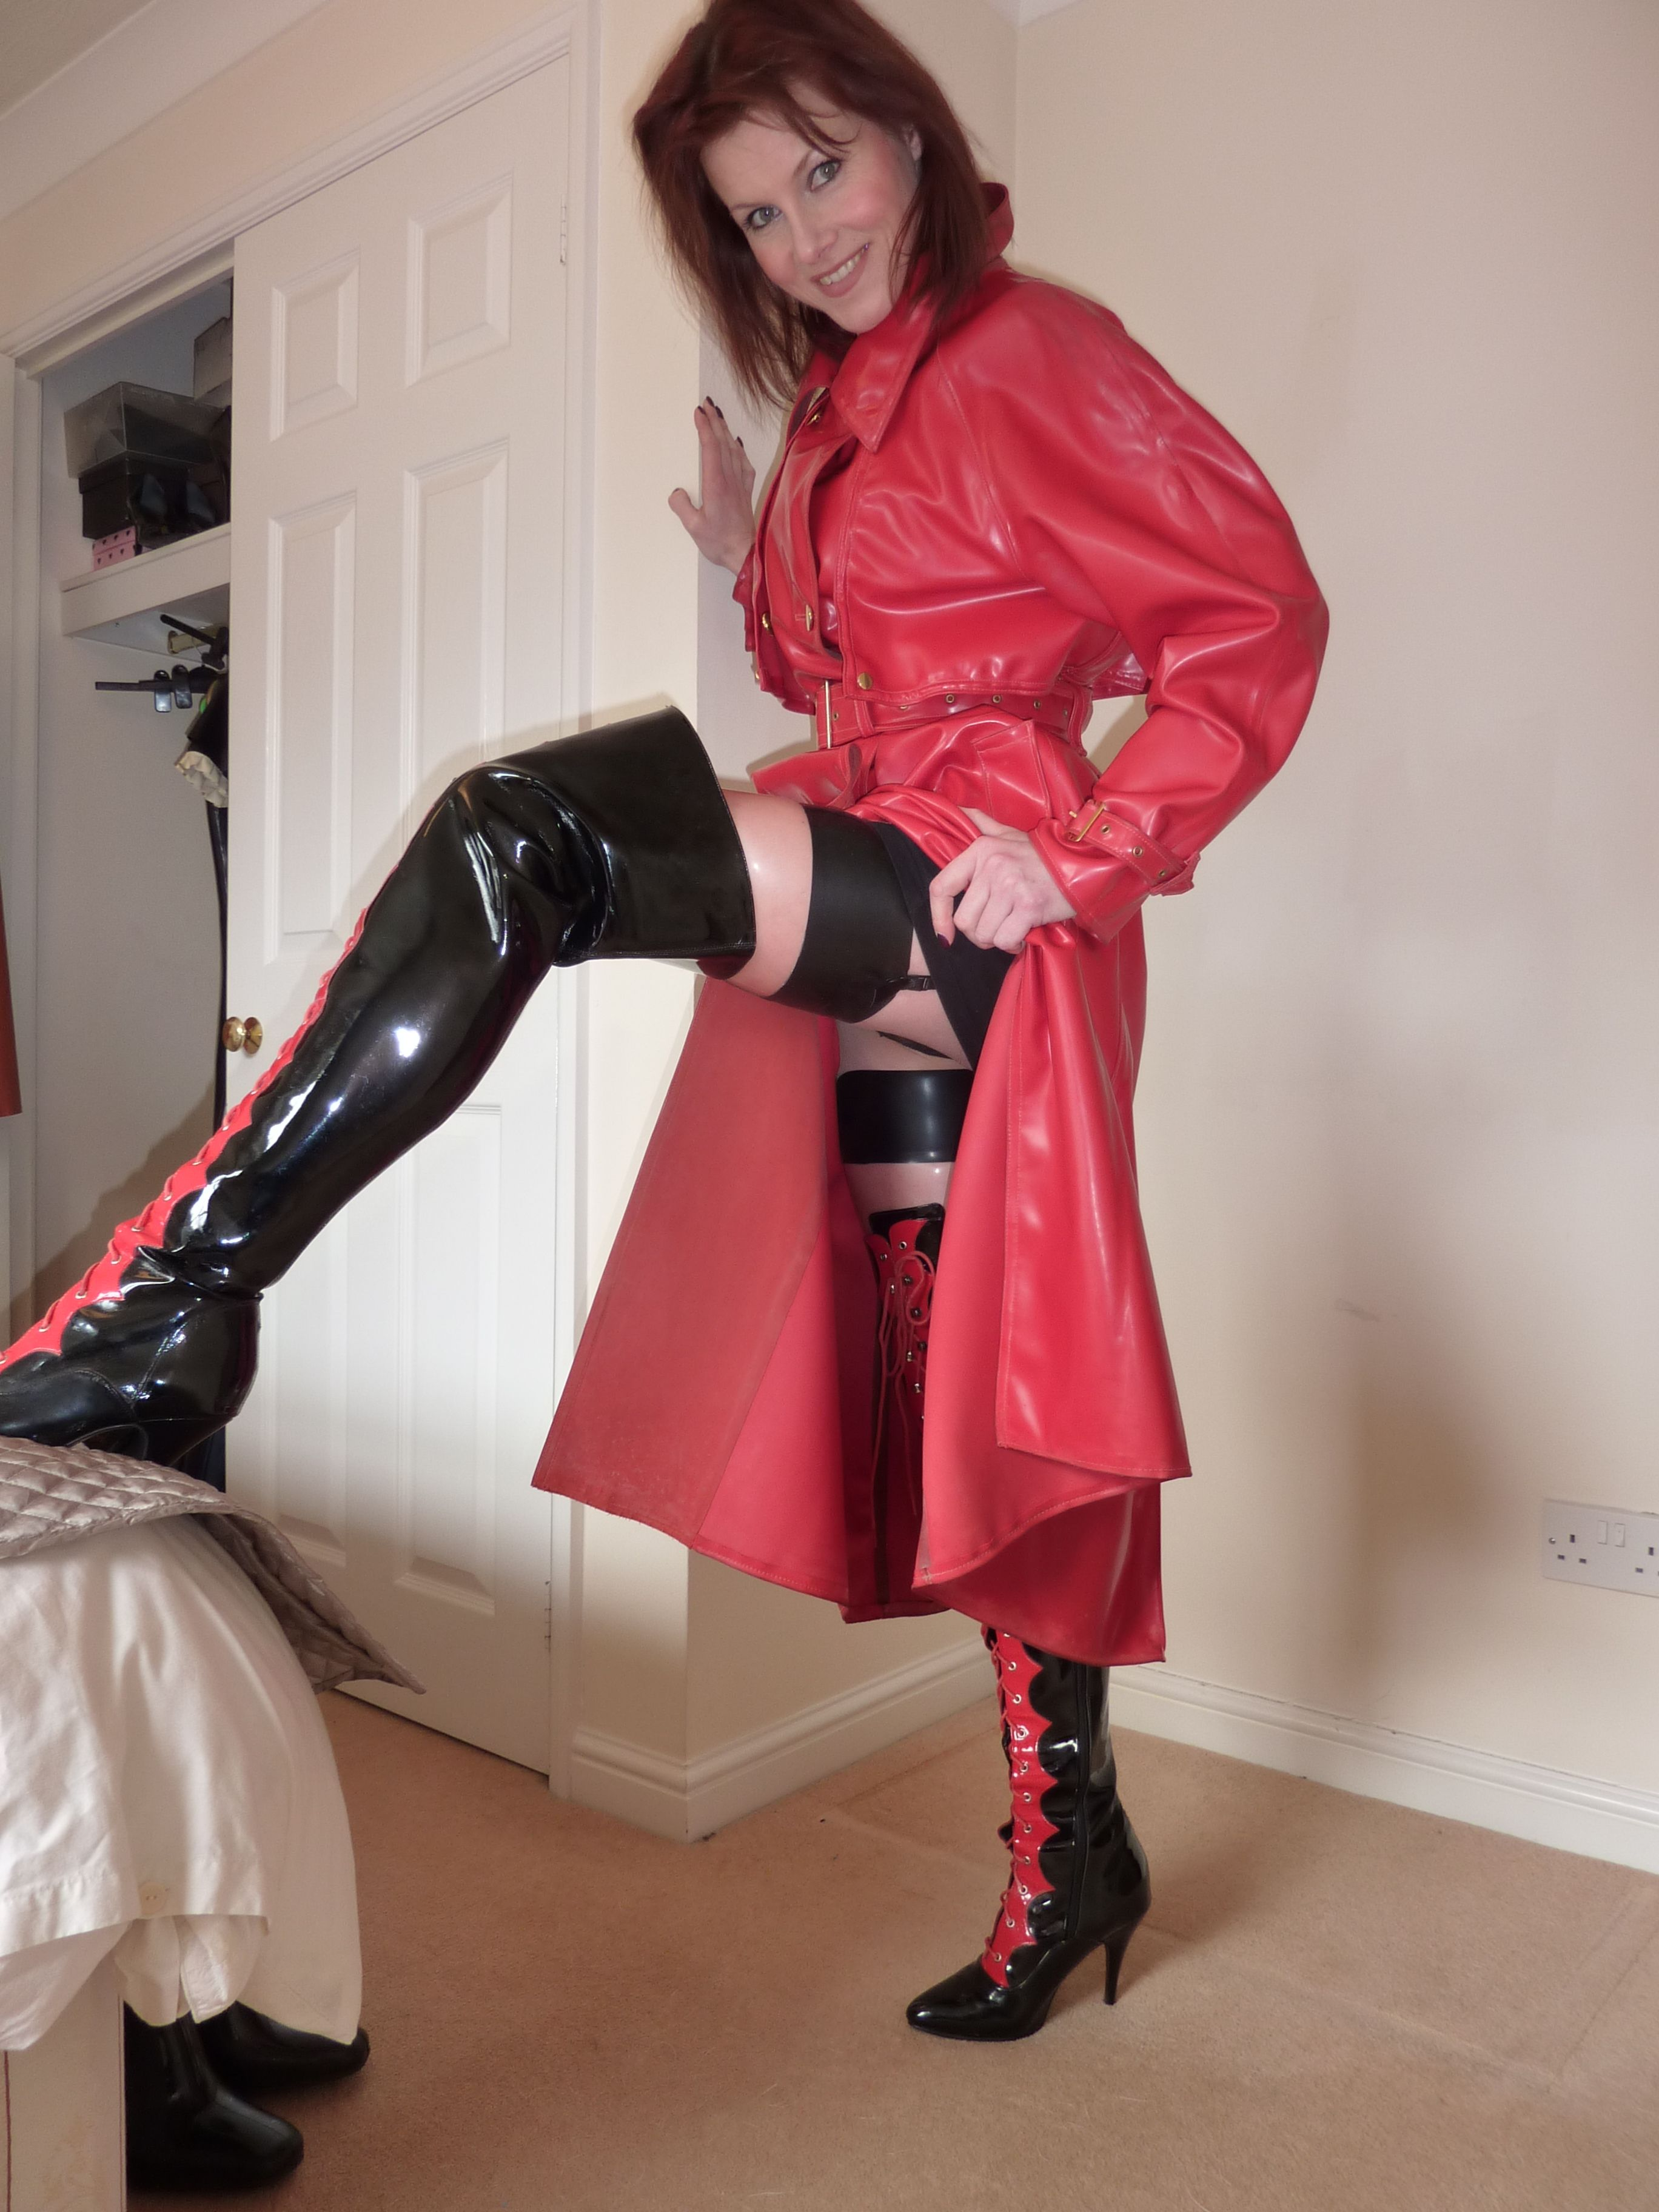 Girls In Rubber Boots